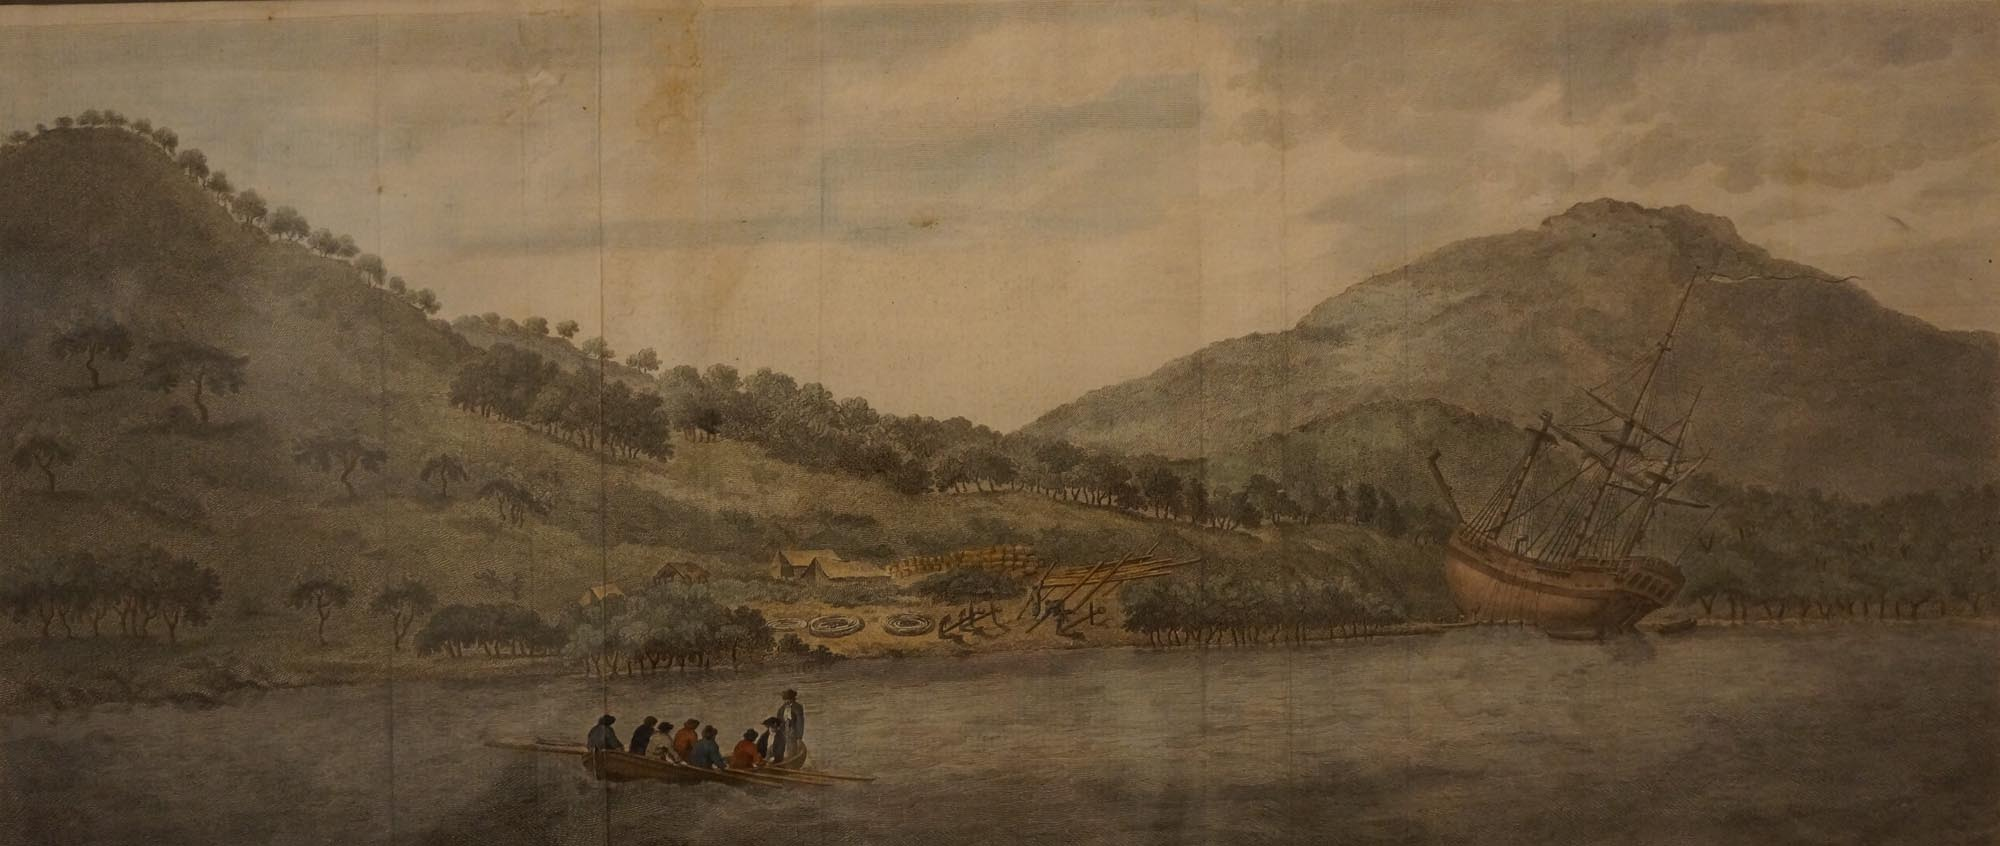 View of the Endeavour River. Silentworld Foundation collection SF001479.